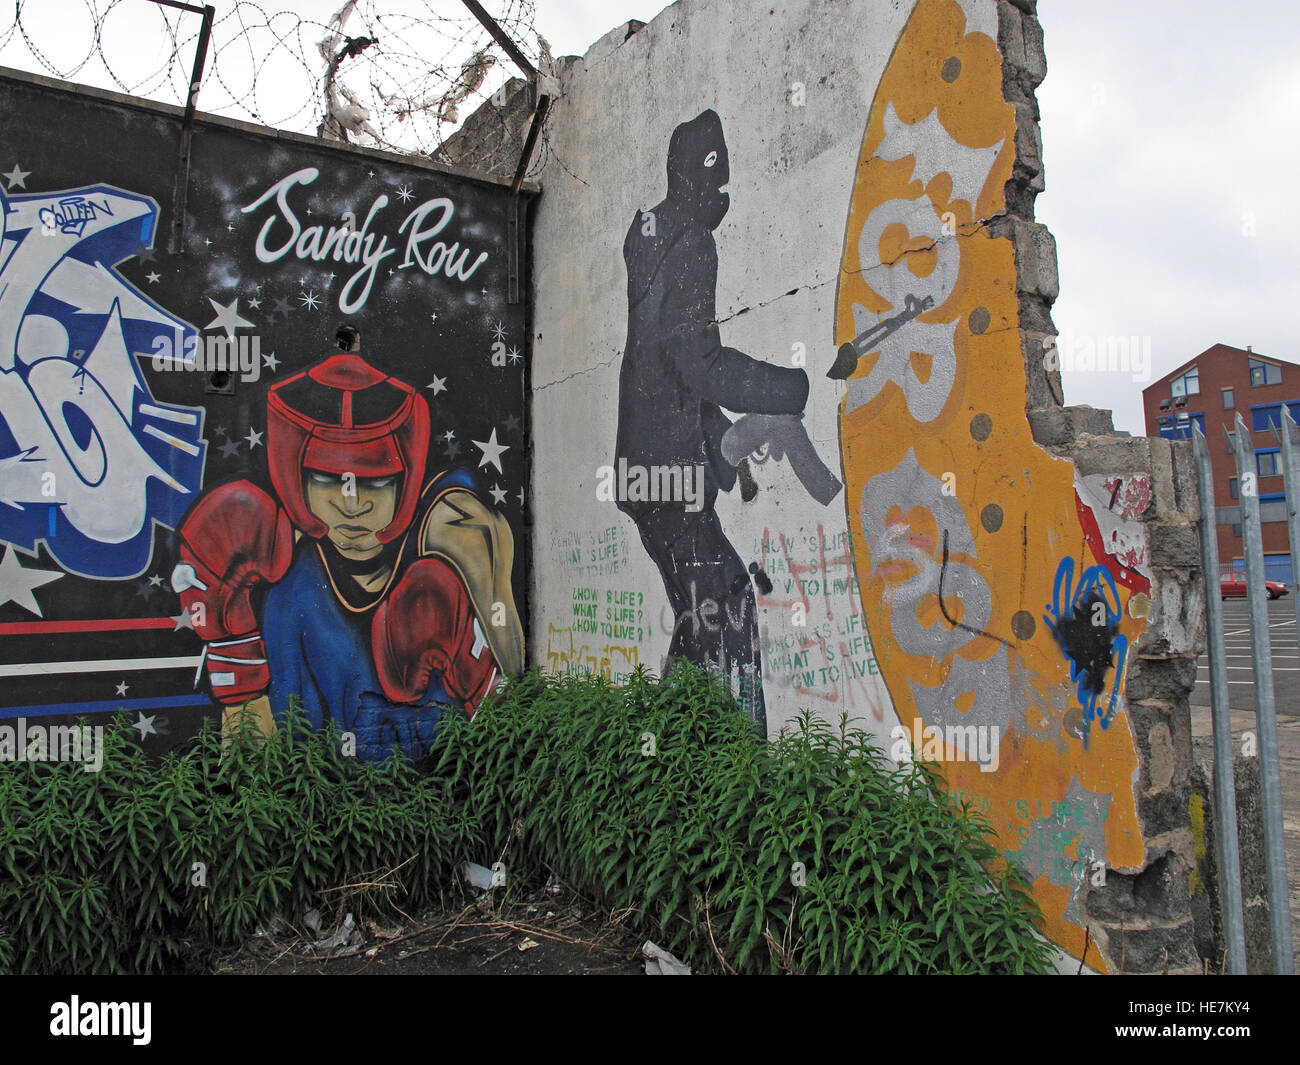 Sandy Row, Unionist community,Belfast,Northern Ireland,UK - For God and Ulster - Stock Image